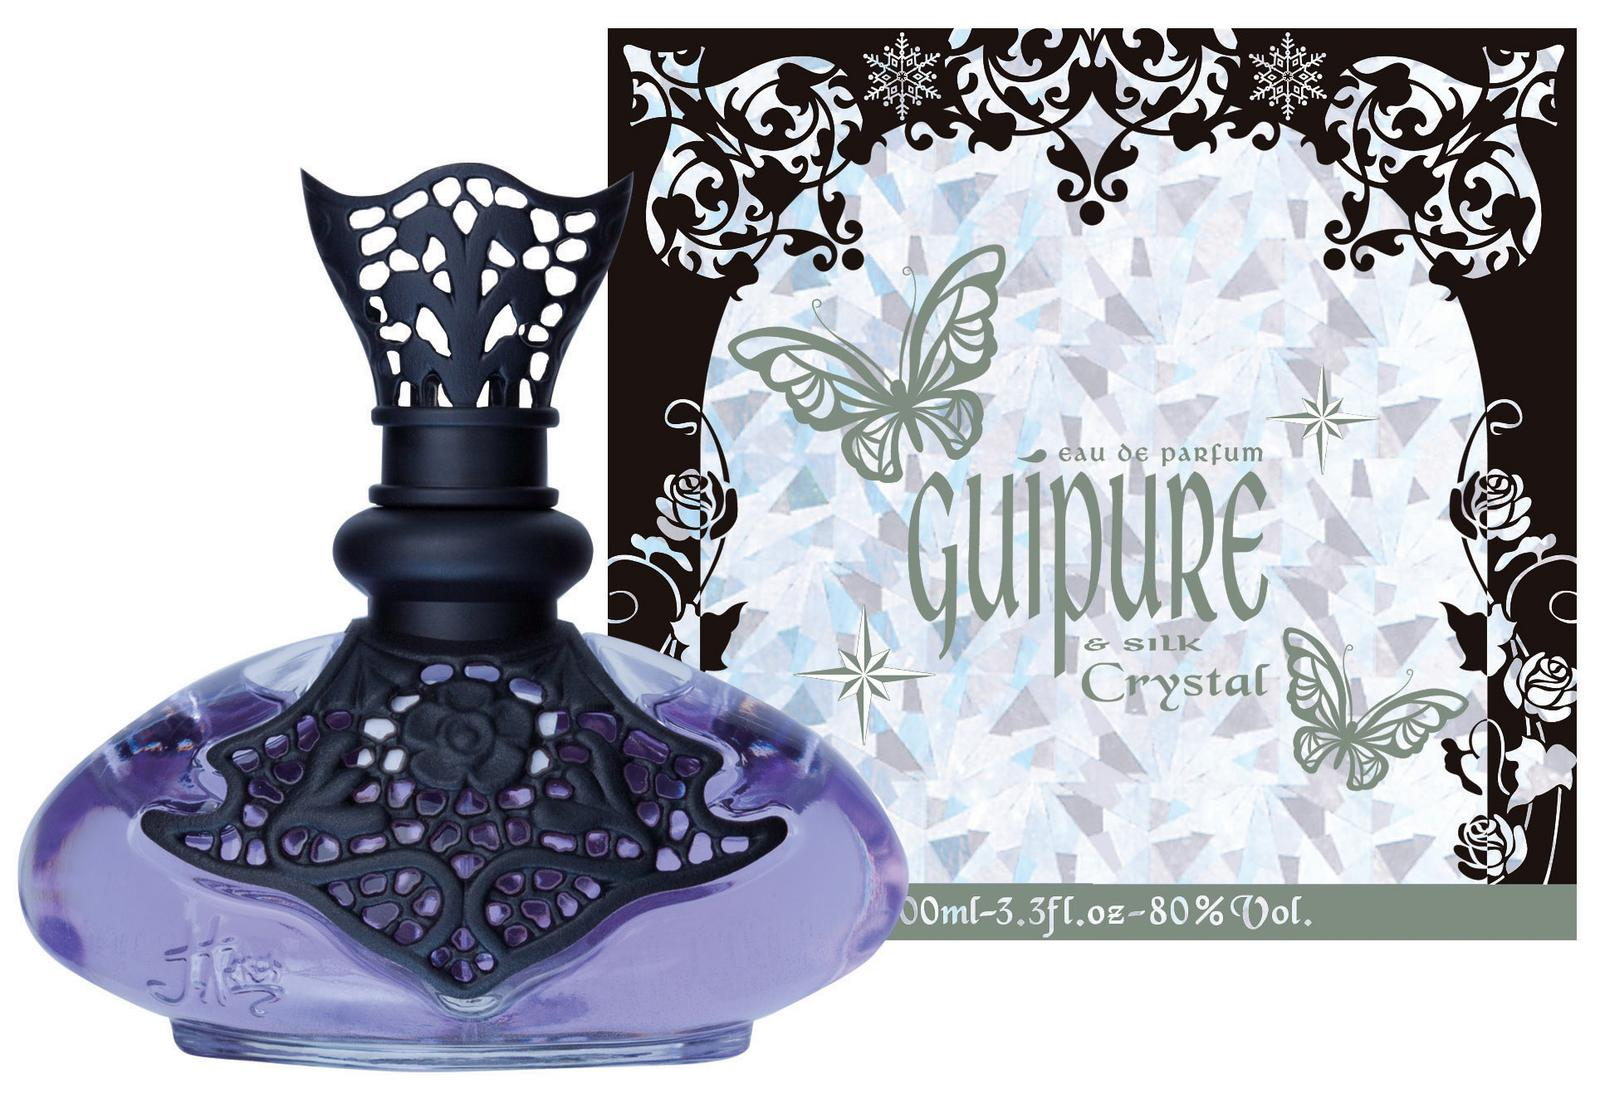 Guipure Amp Silk Crystal Jeanne Arthes Perfume A Fragrance For Amore Mio Forever Women Edp 100 Ml Pictures